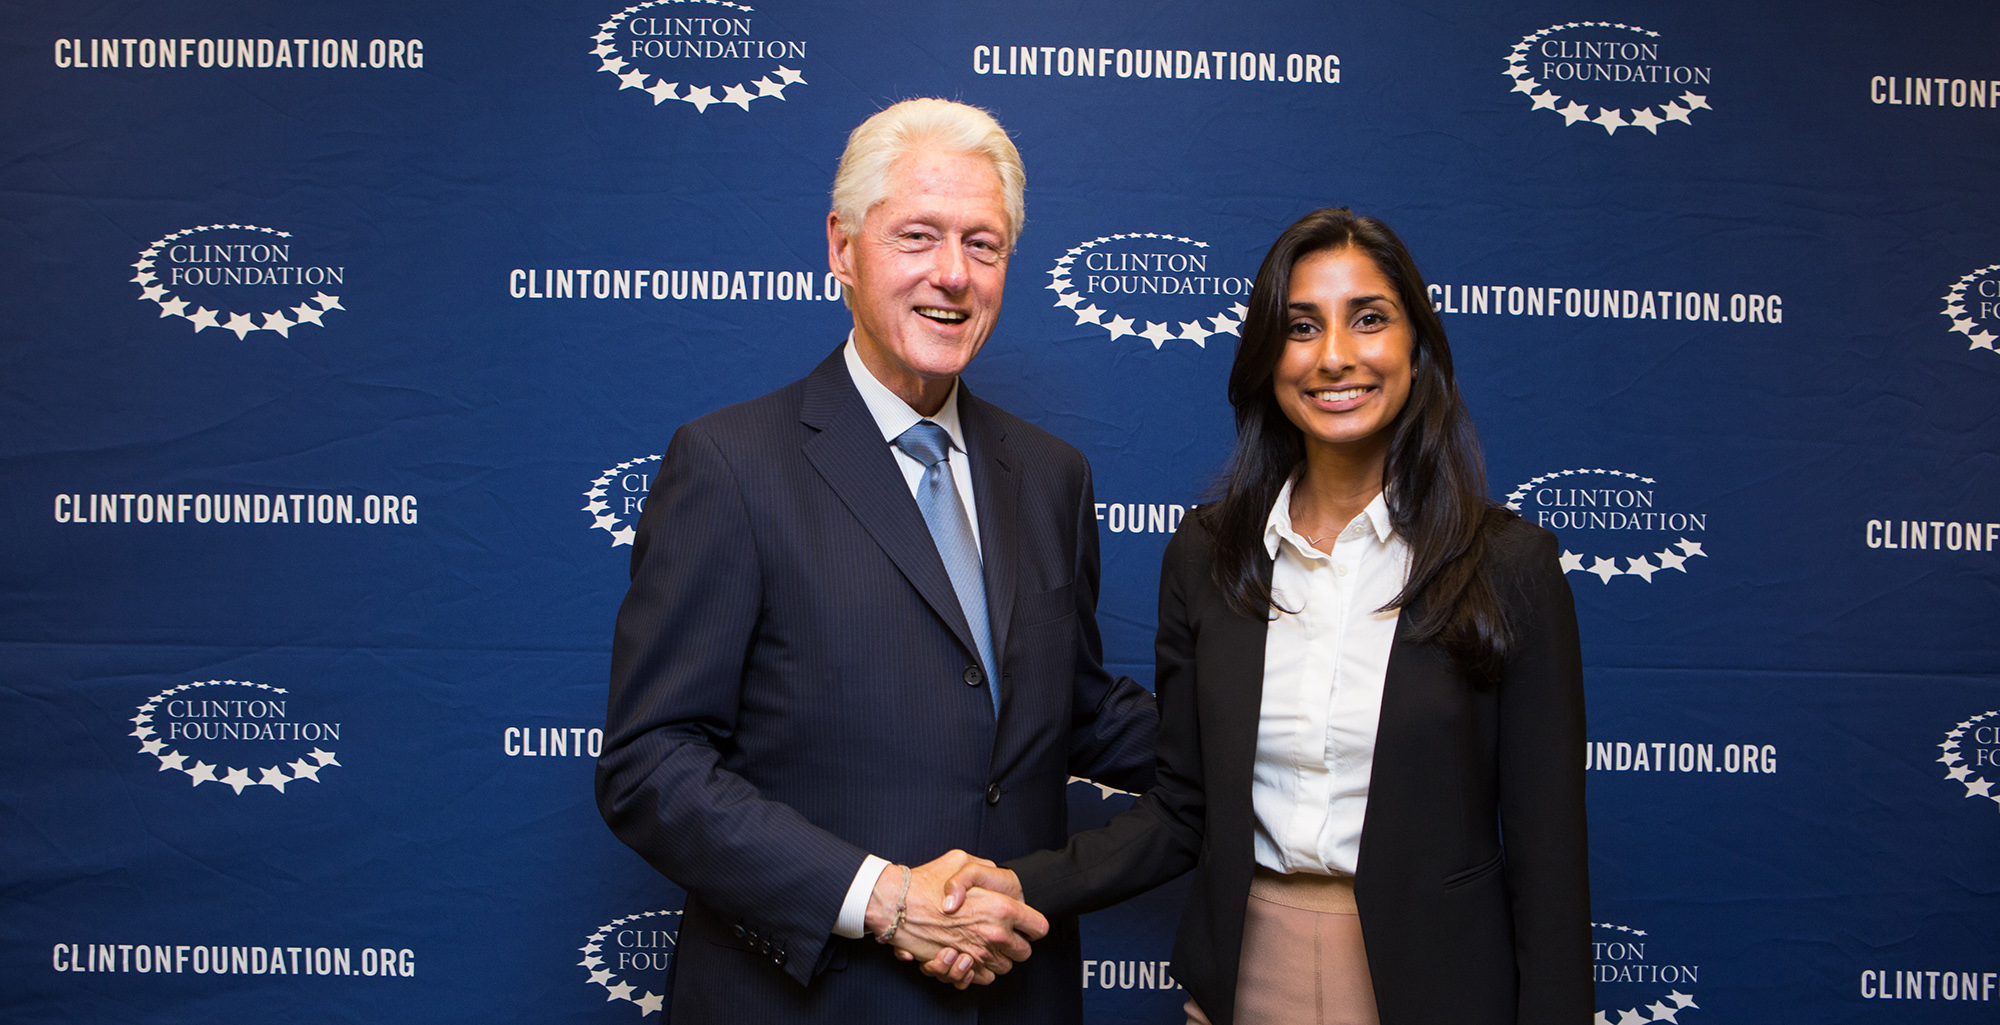 NHH alumna Vaishali Kathuria had an internship at the Clinton Foundation in New York